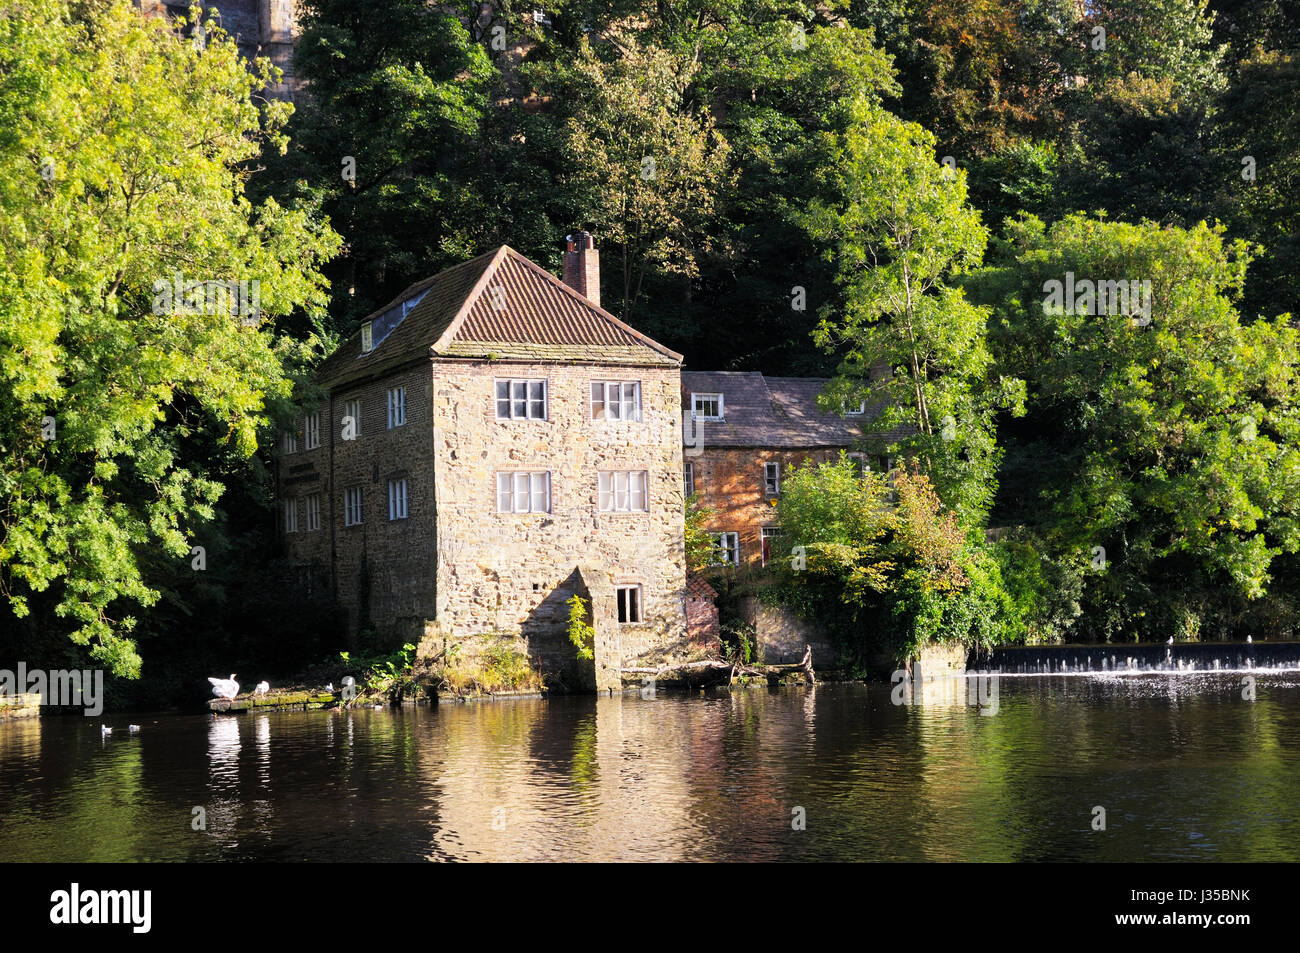 The Old Fulling Mill on the banks of the River Wear, Durham City, North of England, UK - Stock Image